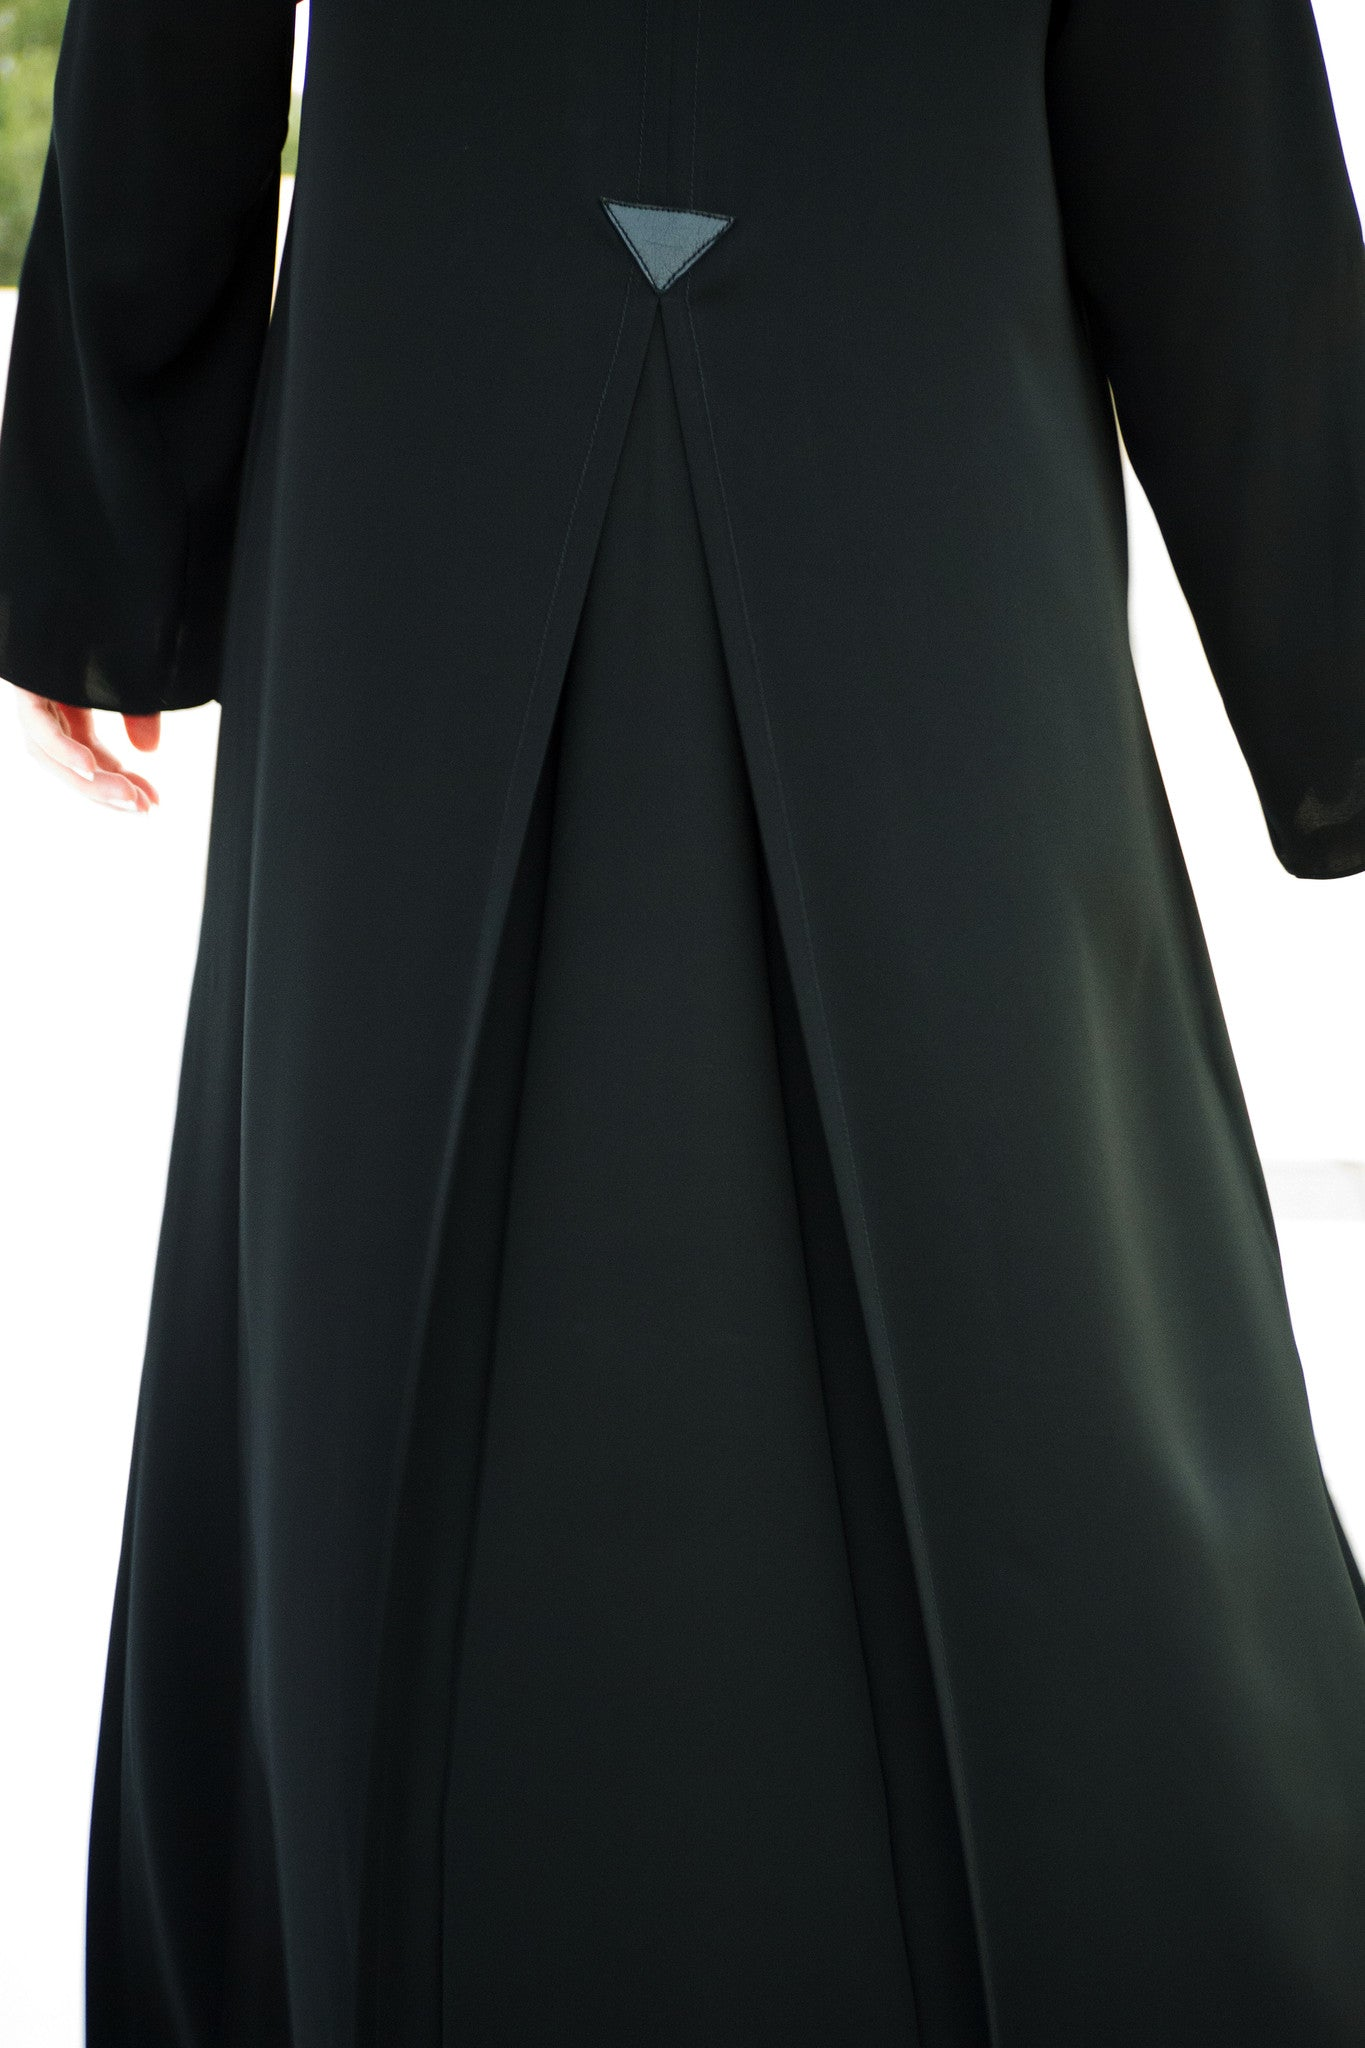 BIANCA - ALB2084B - Arabesque Classic cut abaya shape embellished with fancy box pleats with leather detail middle back and sleeves + Joints with decoration stitching on sleeves, front and middle back.